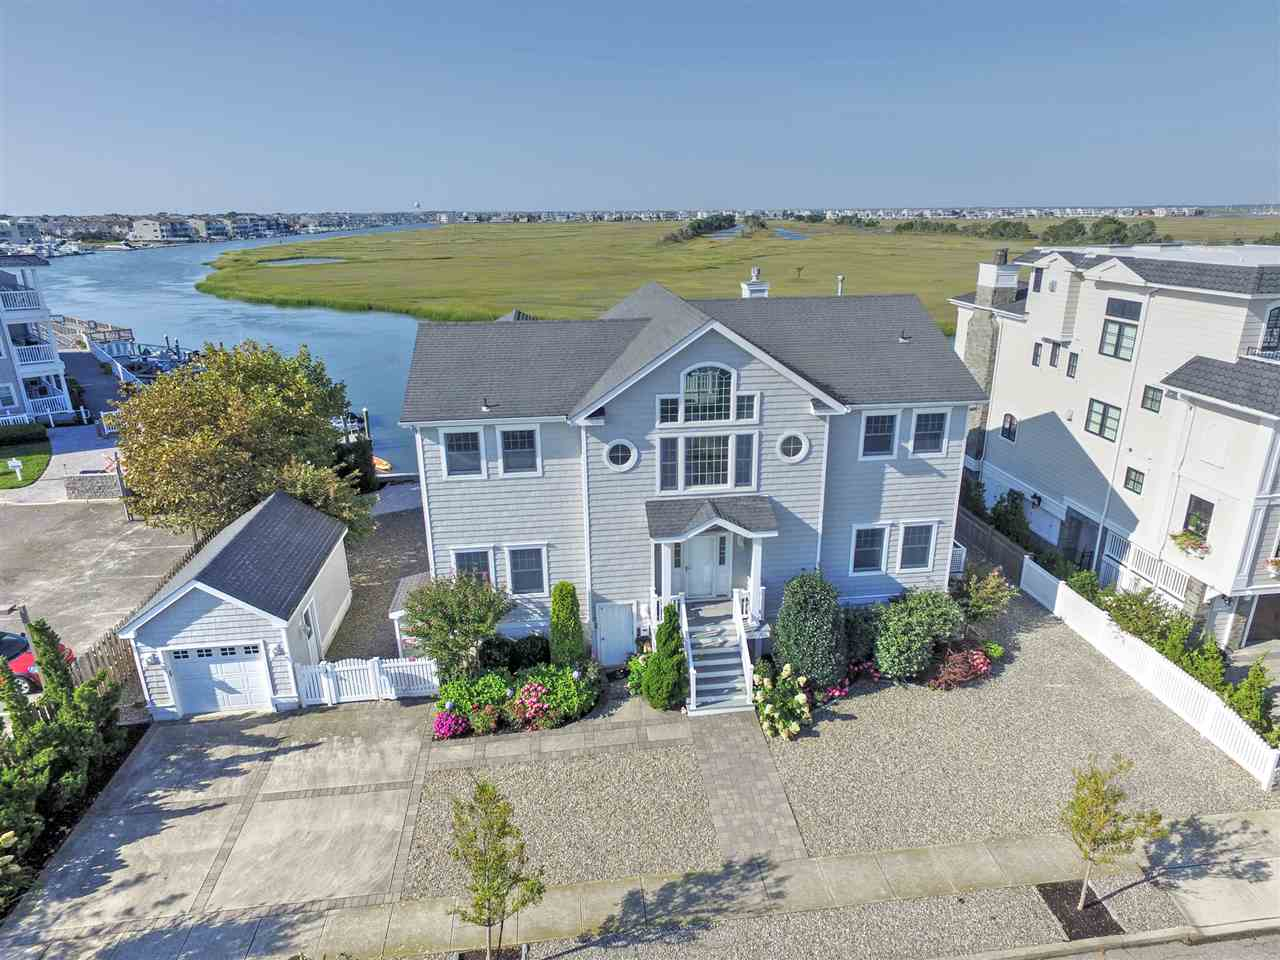 404 7th Street - Avalon, NJ